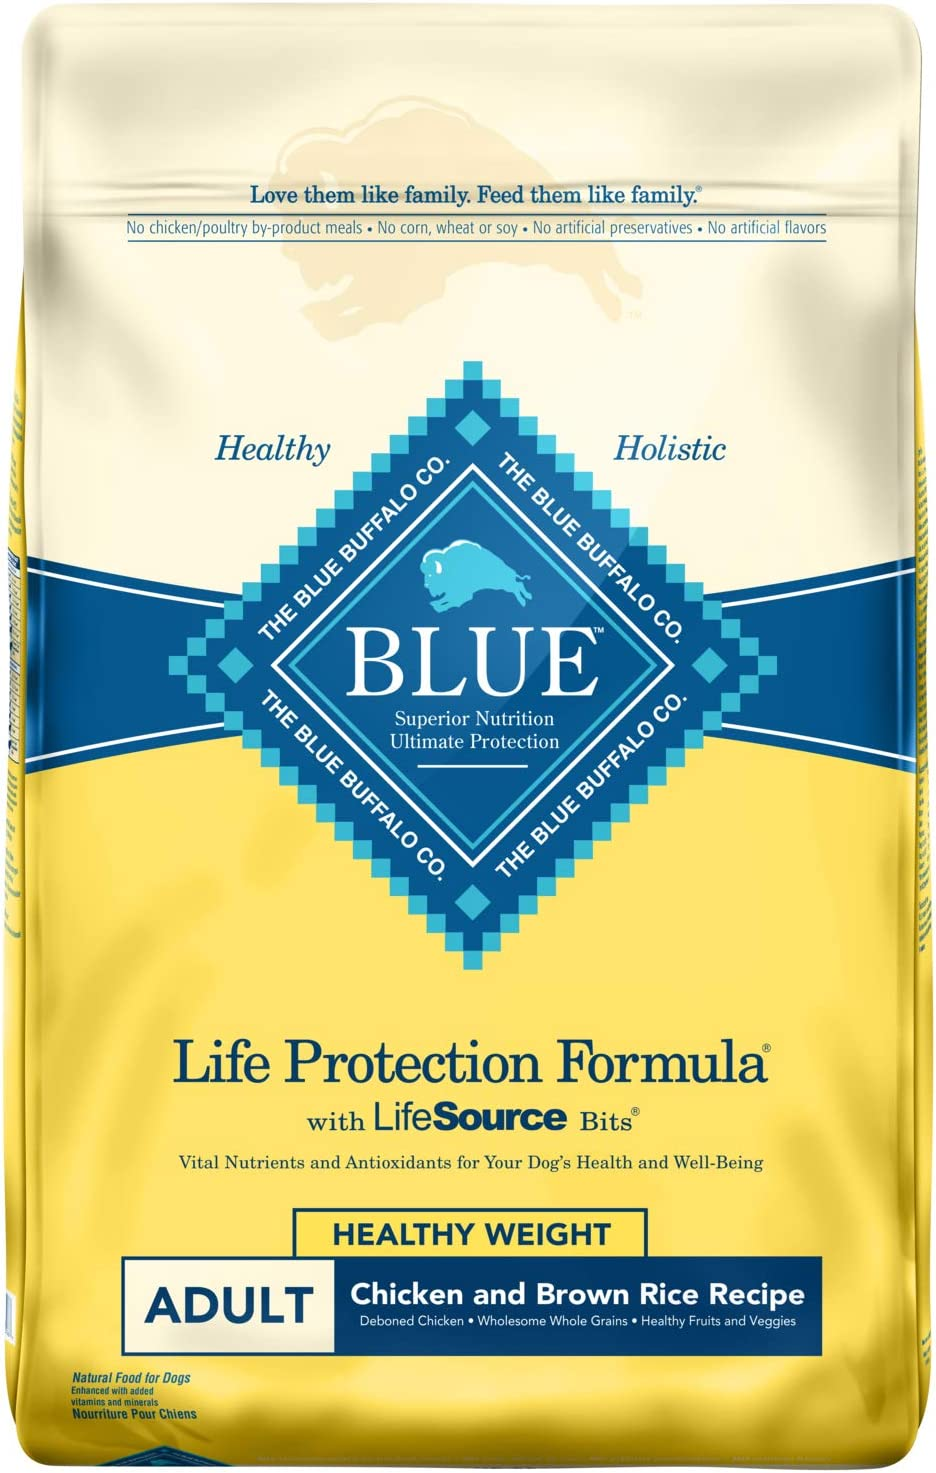 4. Blue Buffalo Life Protection Formula Healthy Weight Dry Dog Food